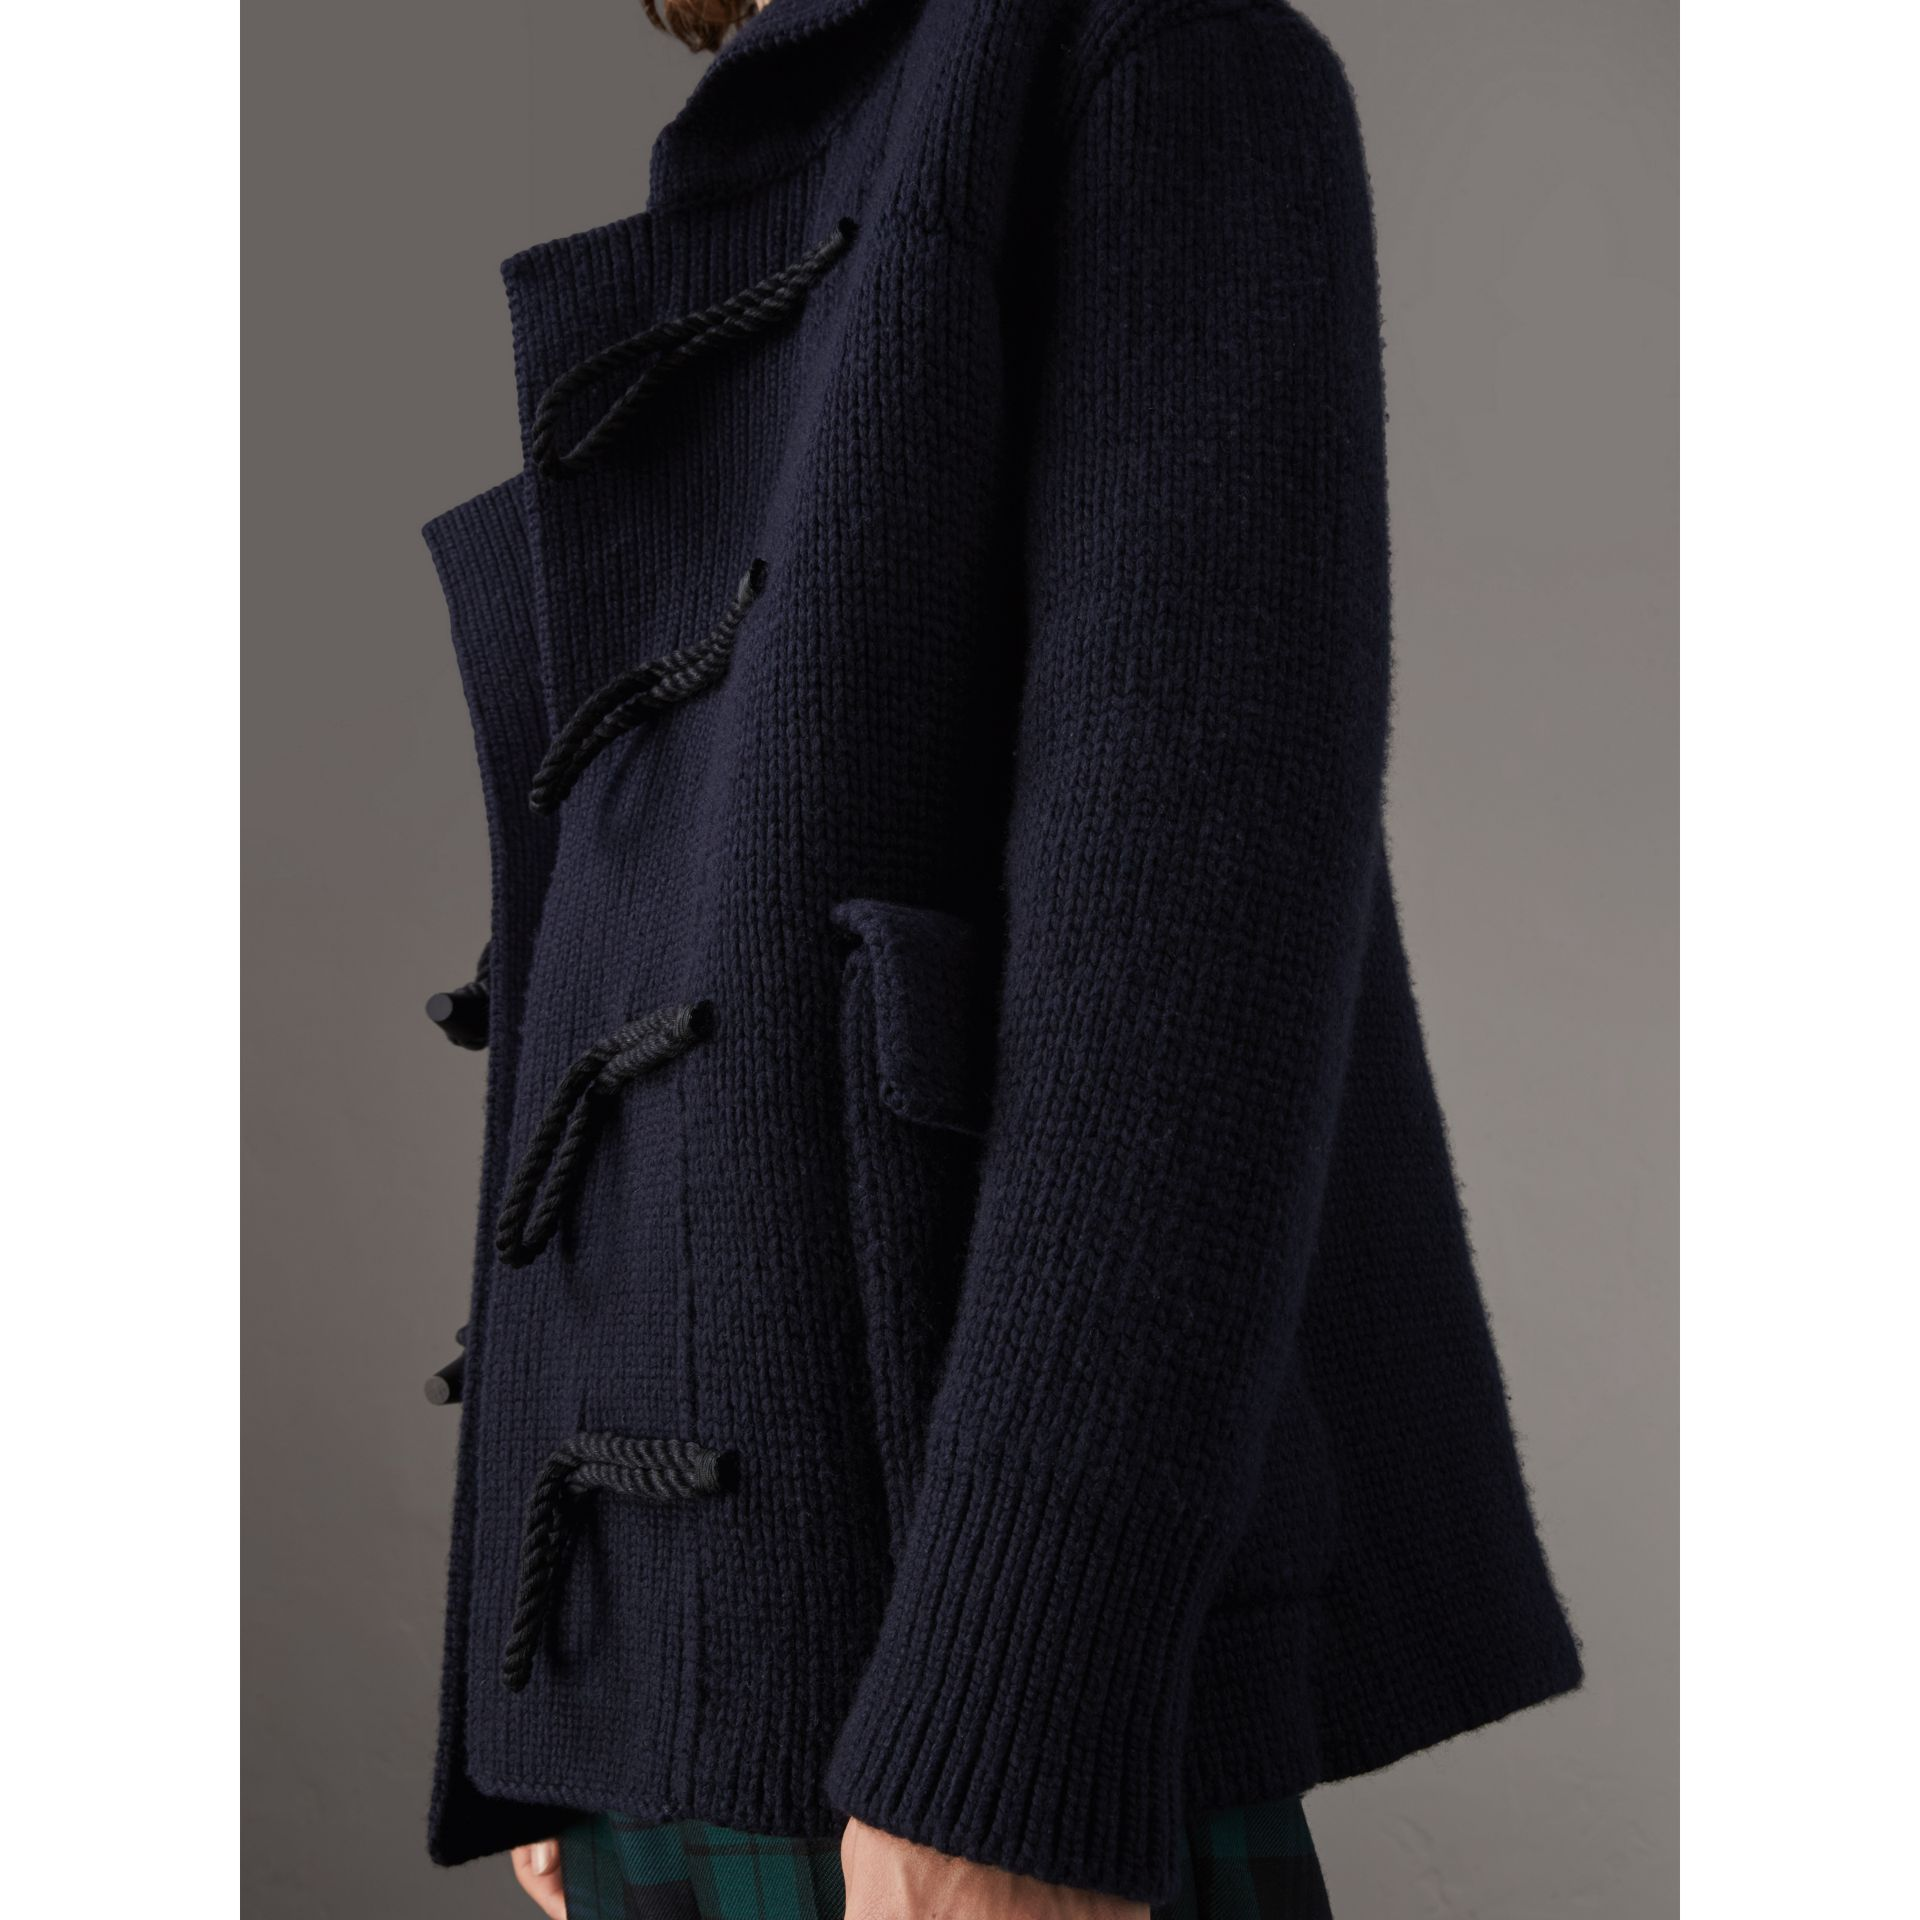 Knitted Wool Cashmere Blend Jacket in Navy - Men | Burberry - gallery image 1